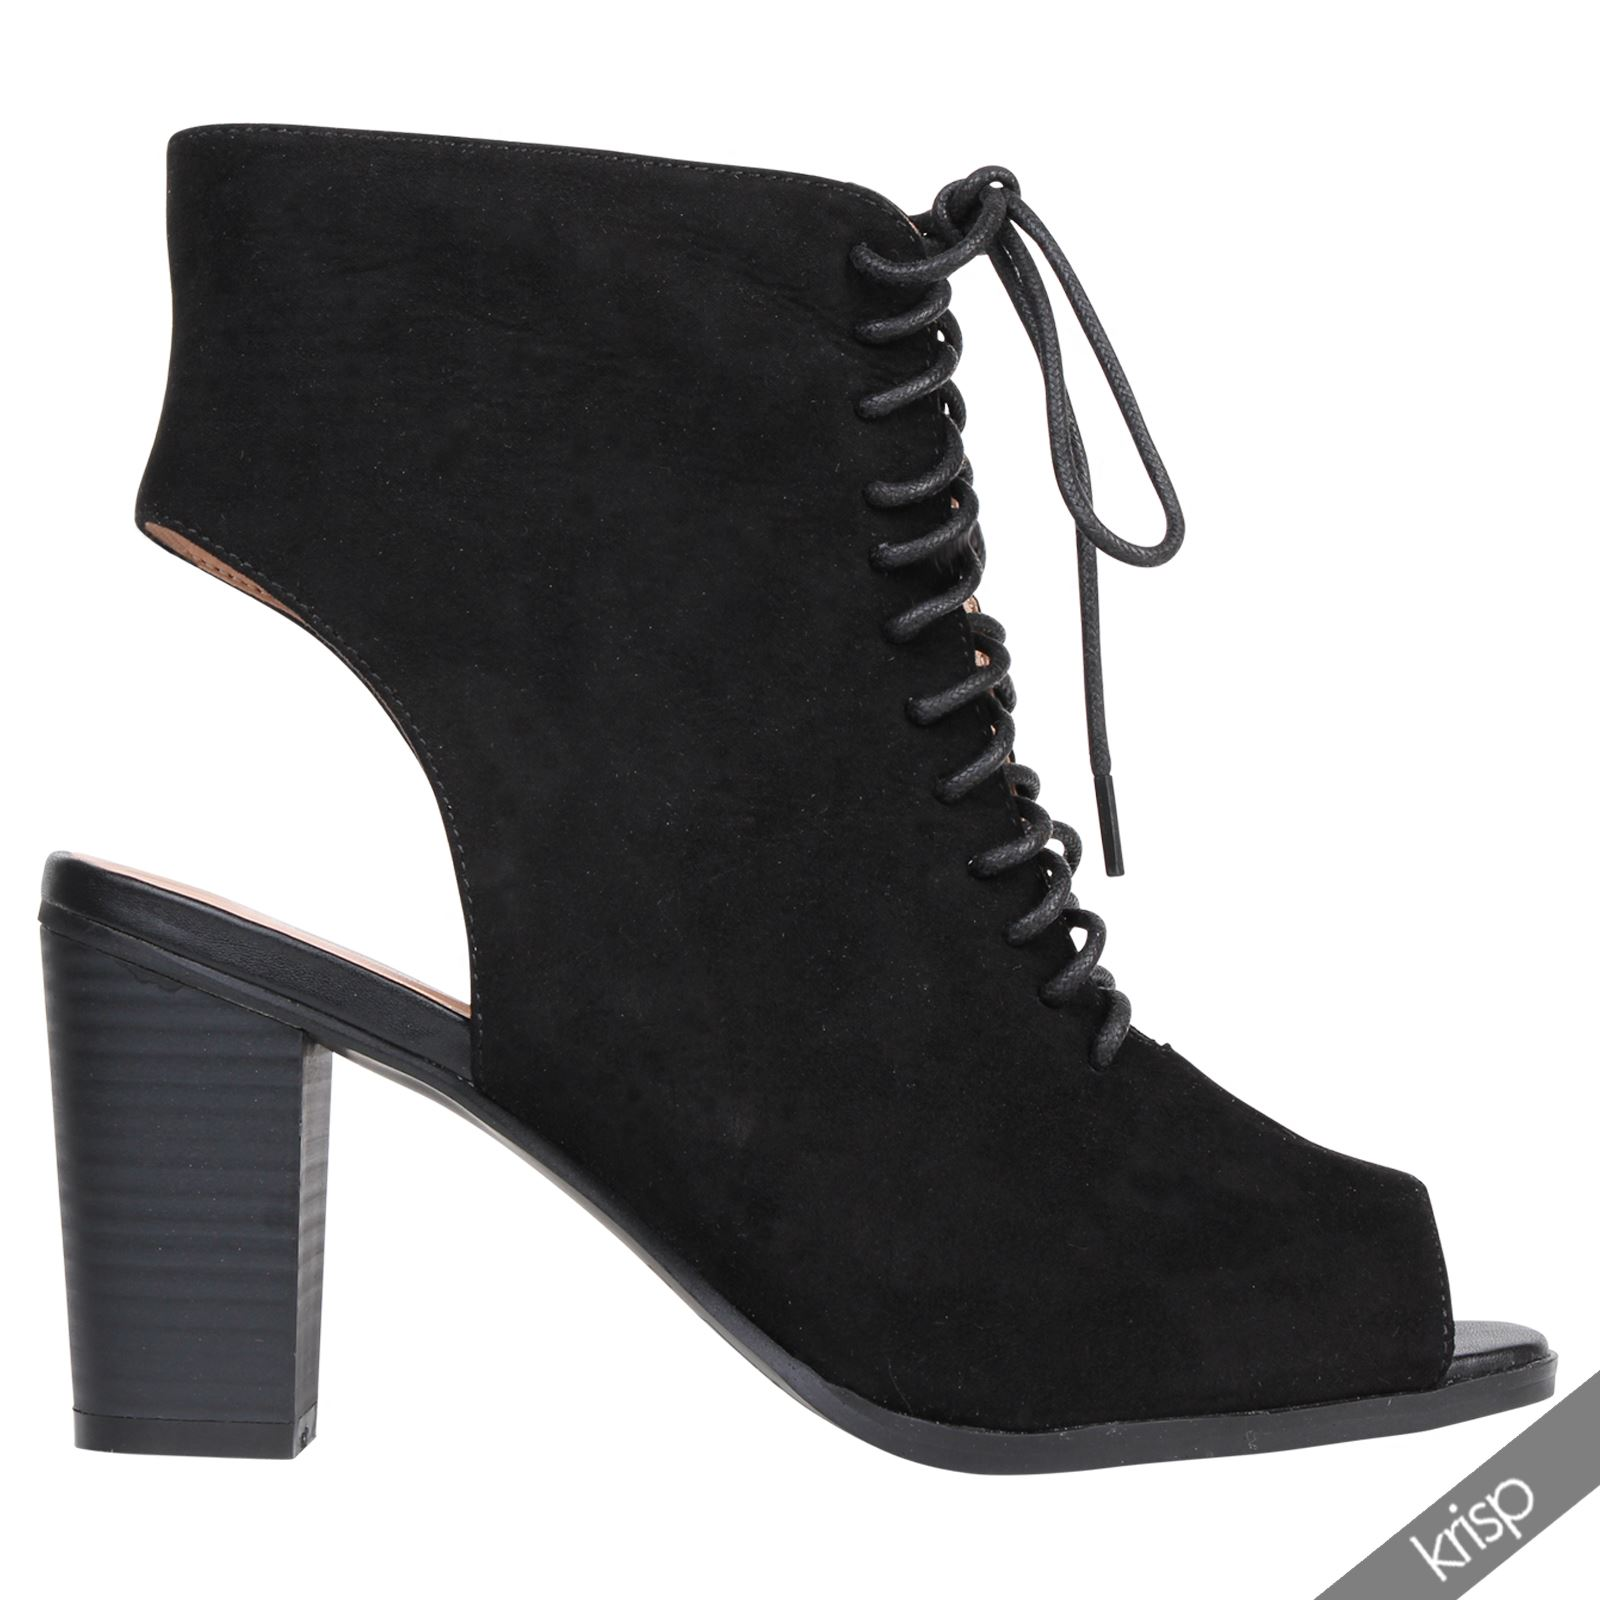 Wonderful Ankle Boots  The Richly Colored Suede Pairs Do Have Suedewrapped Heels, Which Look Stunning, But Are Much More Prone To S